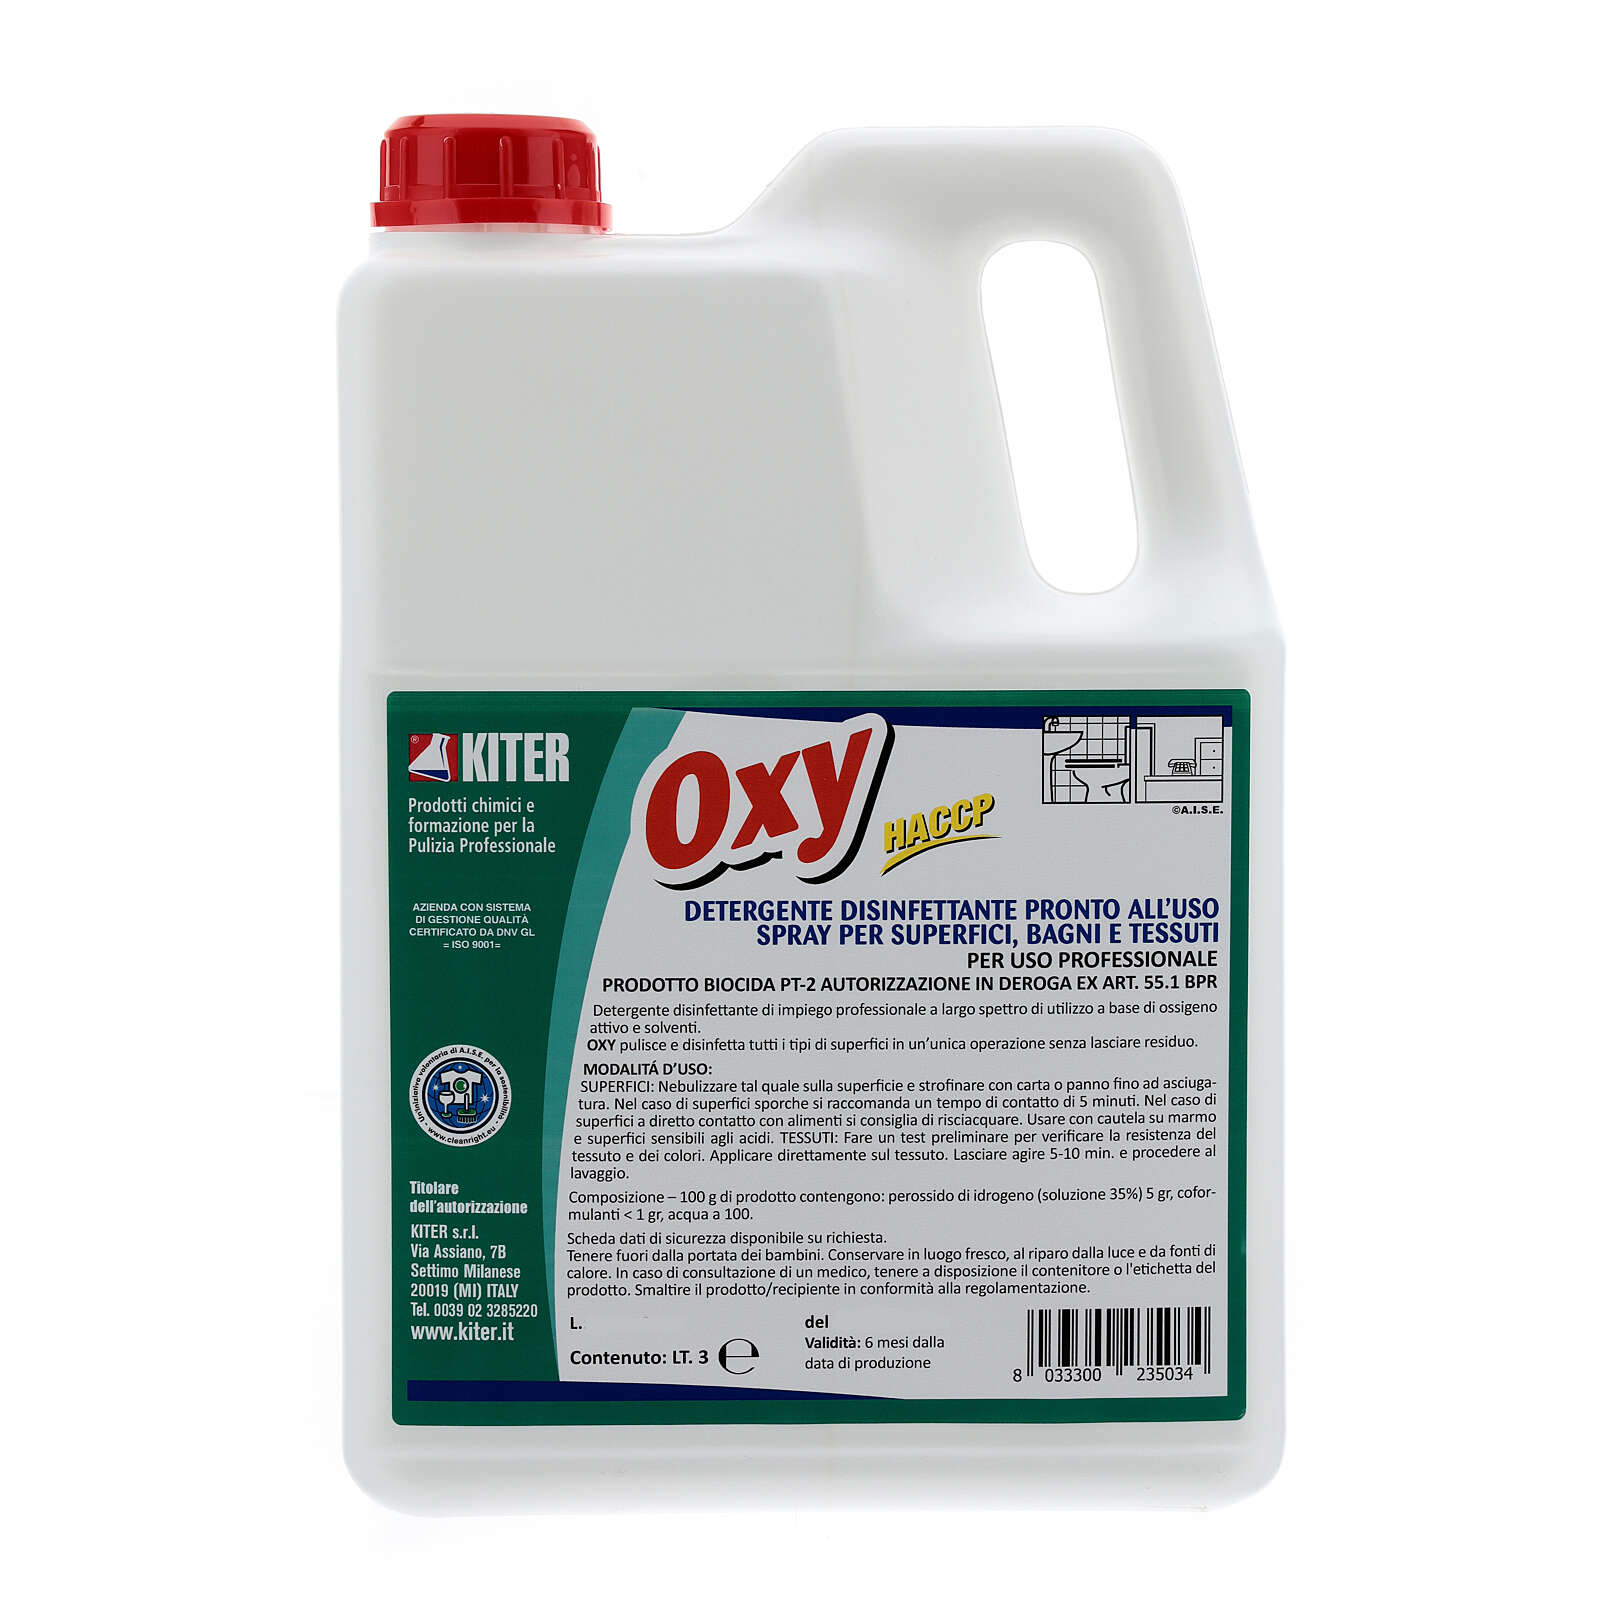 Disinfectatant spray, Oxy Biocide 3 liters- Refill 3